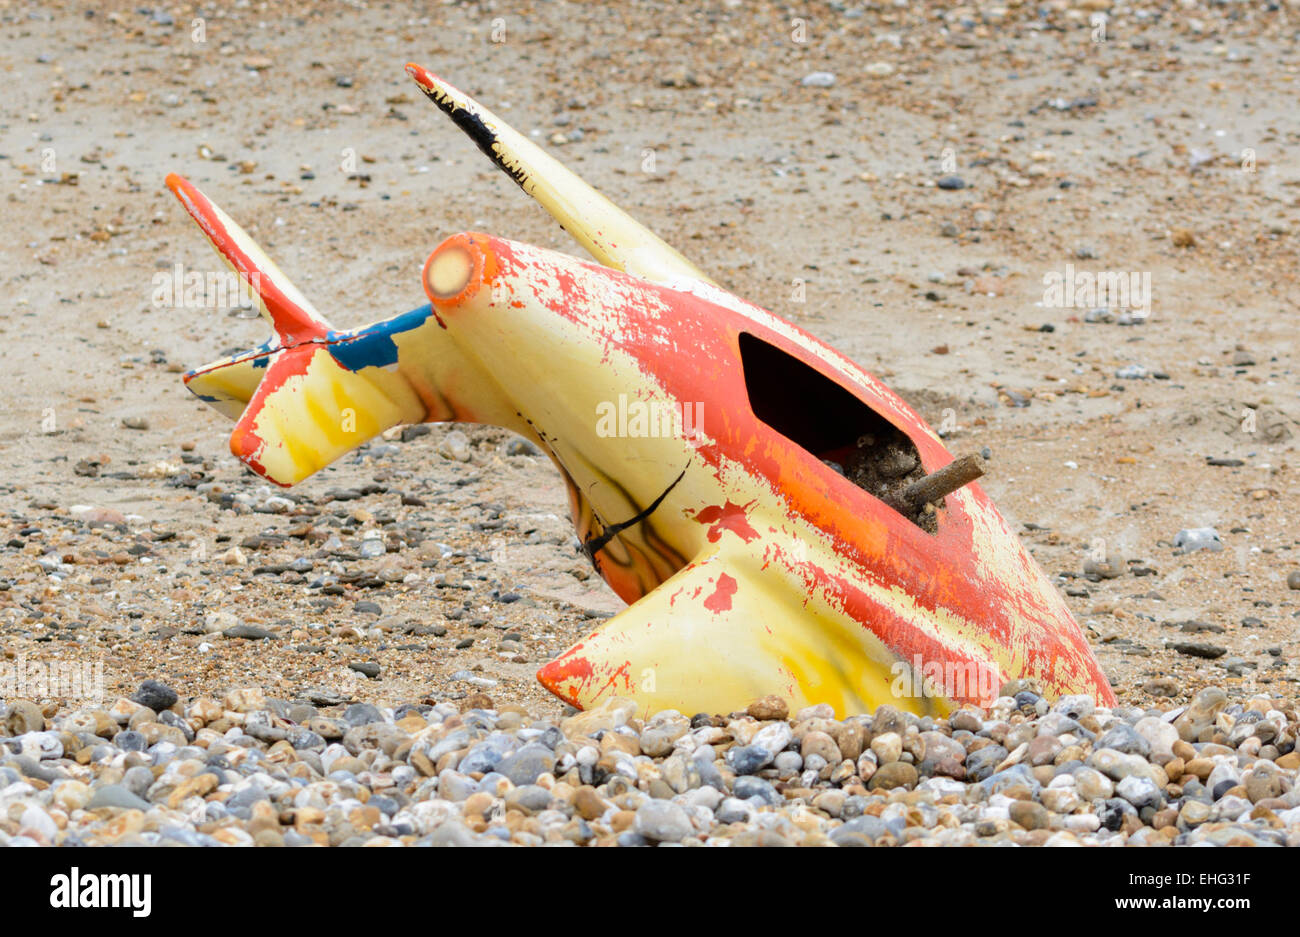 Part of a fairground ride wedged into the shingle on a beach. - Stock Image